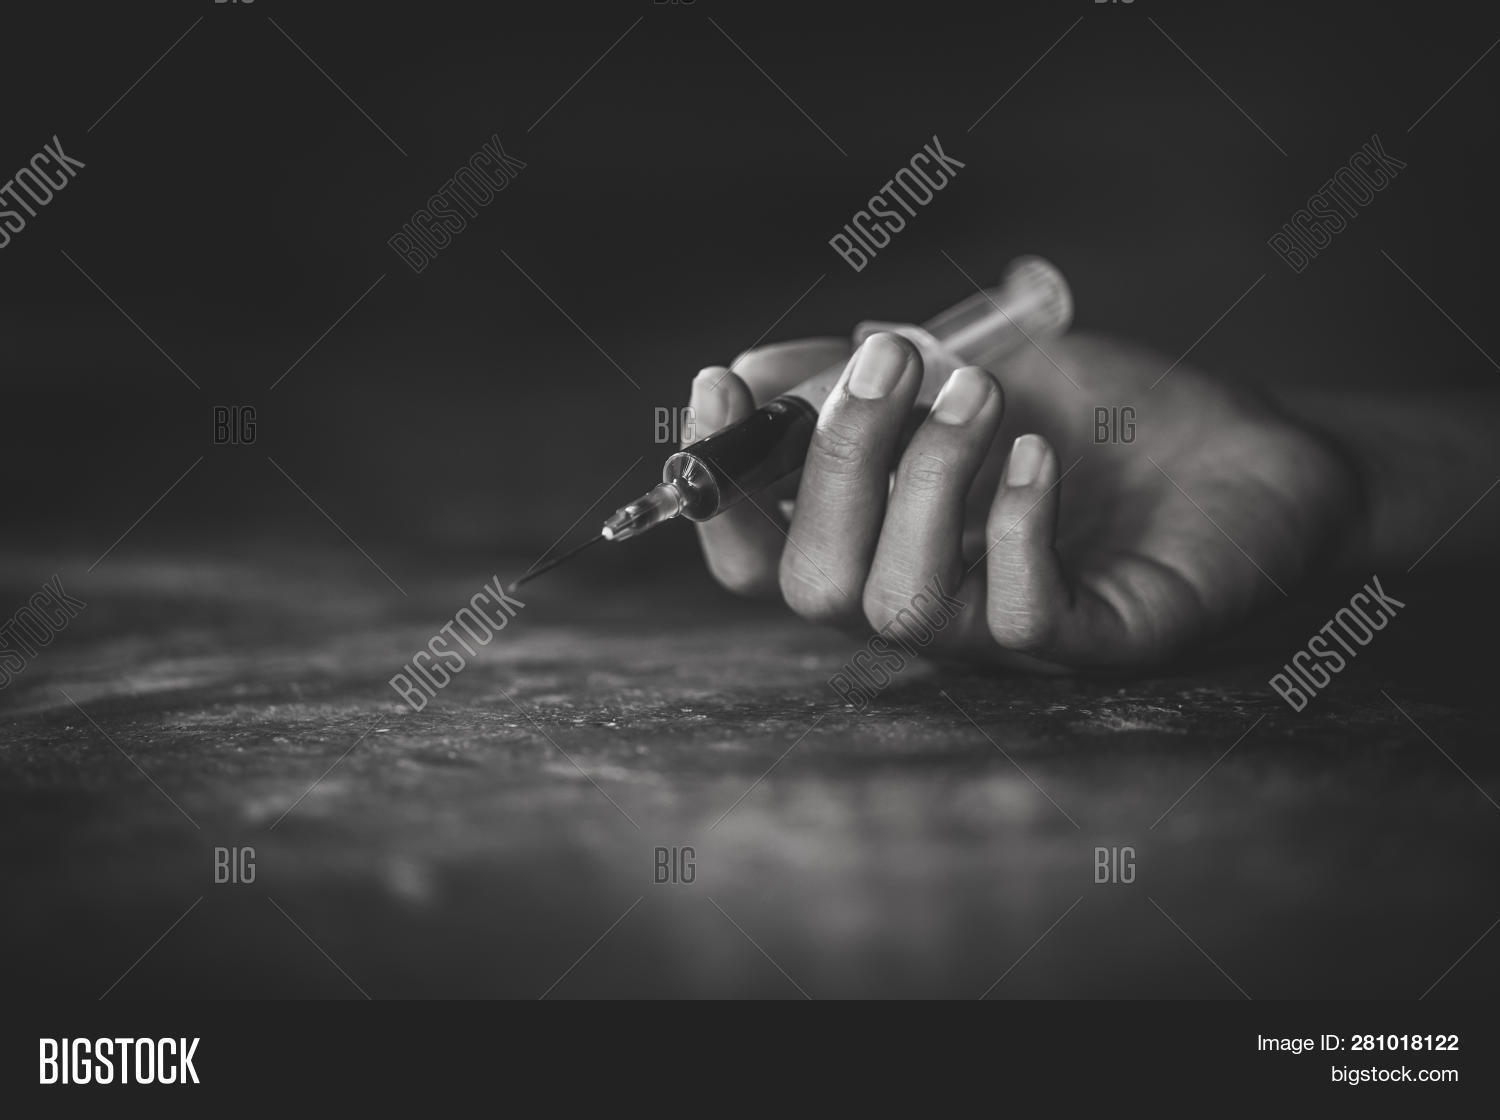 Woman Hand Drug Addict Image & Photo (Free Trial) | Bigstock